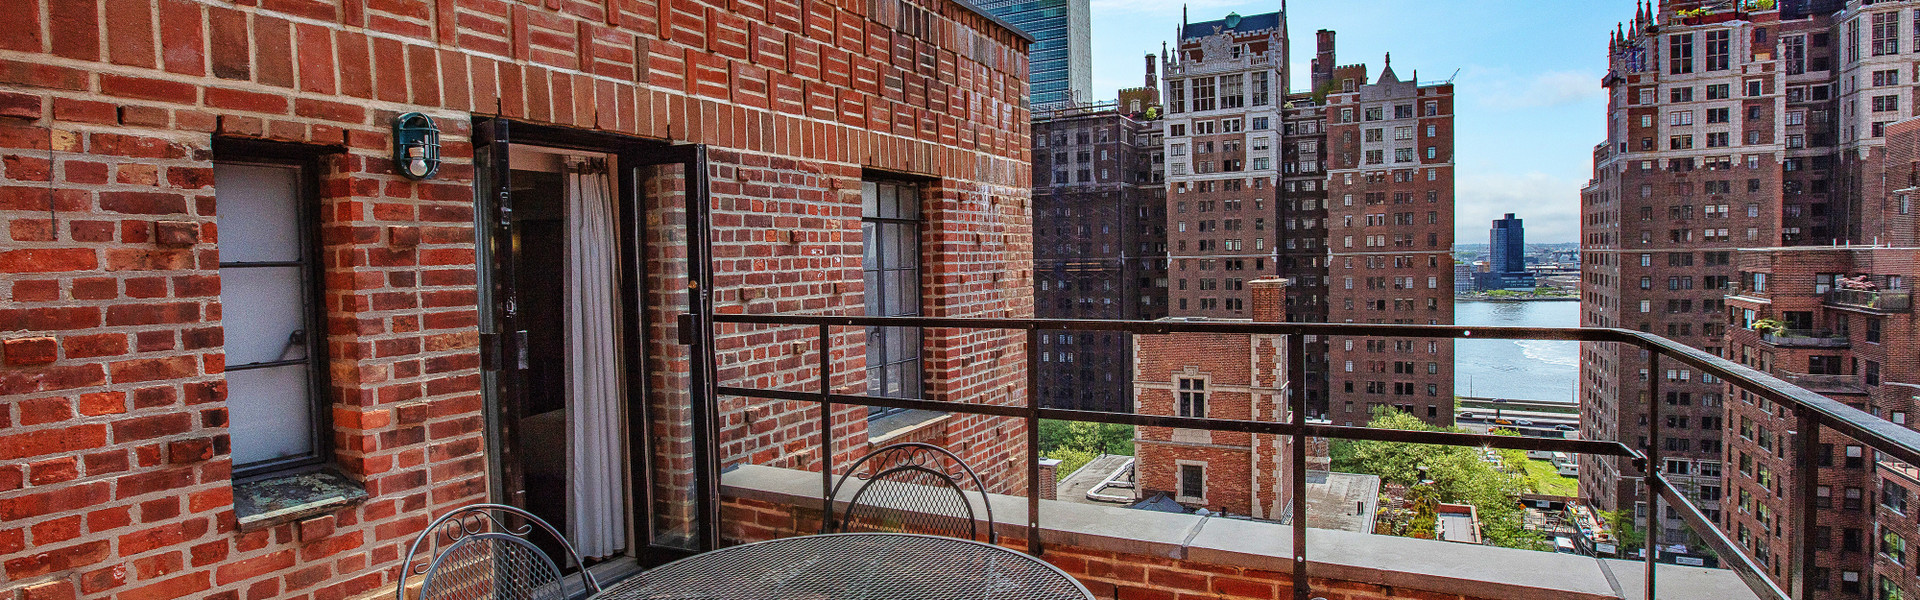 A View from our Hotels Rooms in NYC | Westgate New York City | Hotel Rooms in Manhattan NY